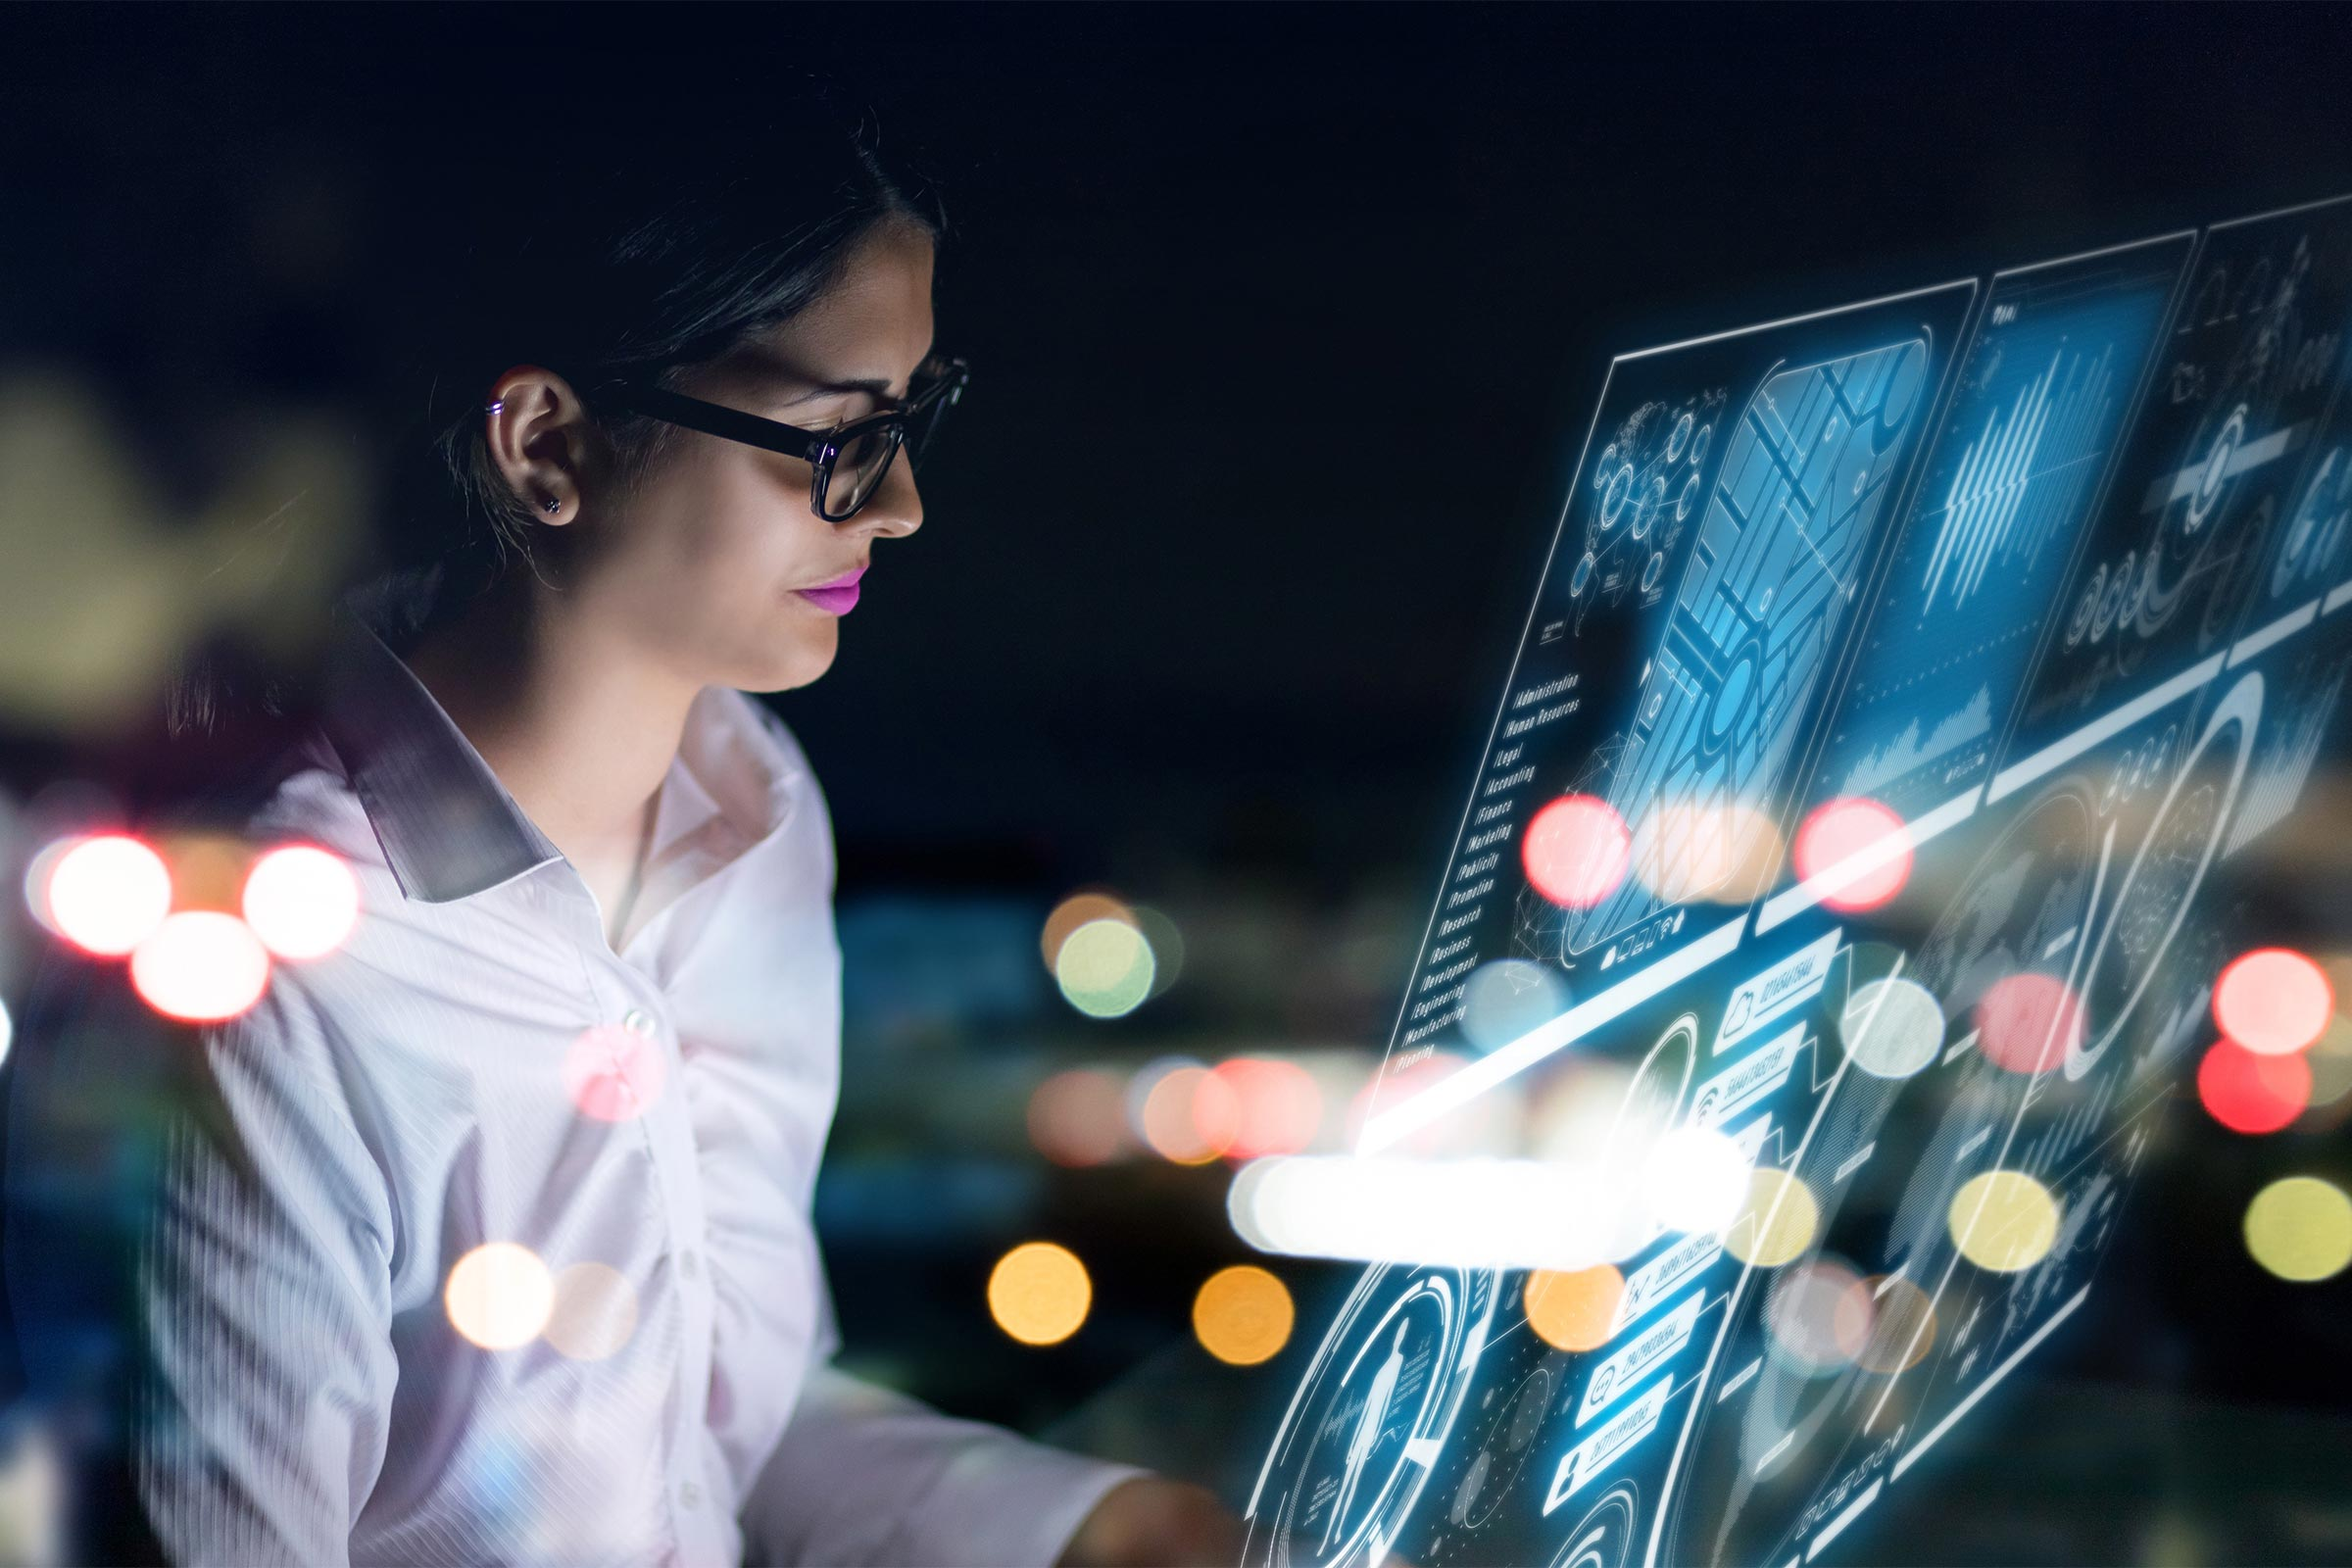 Young woman looking at holographic screen